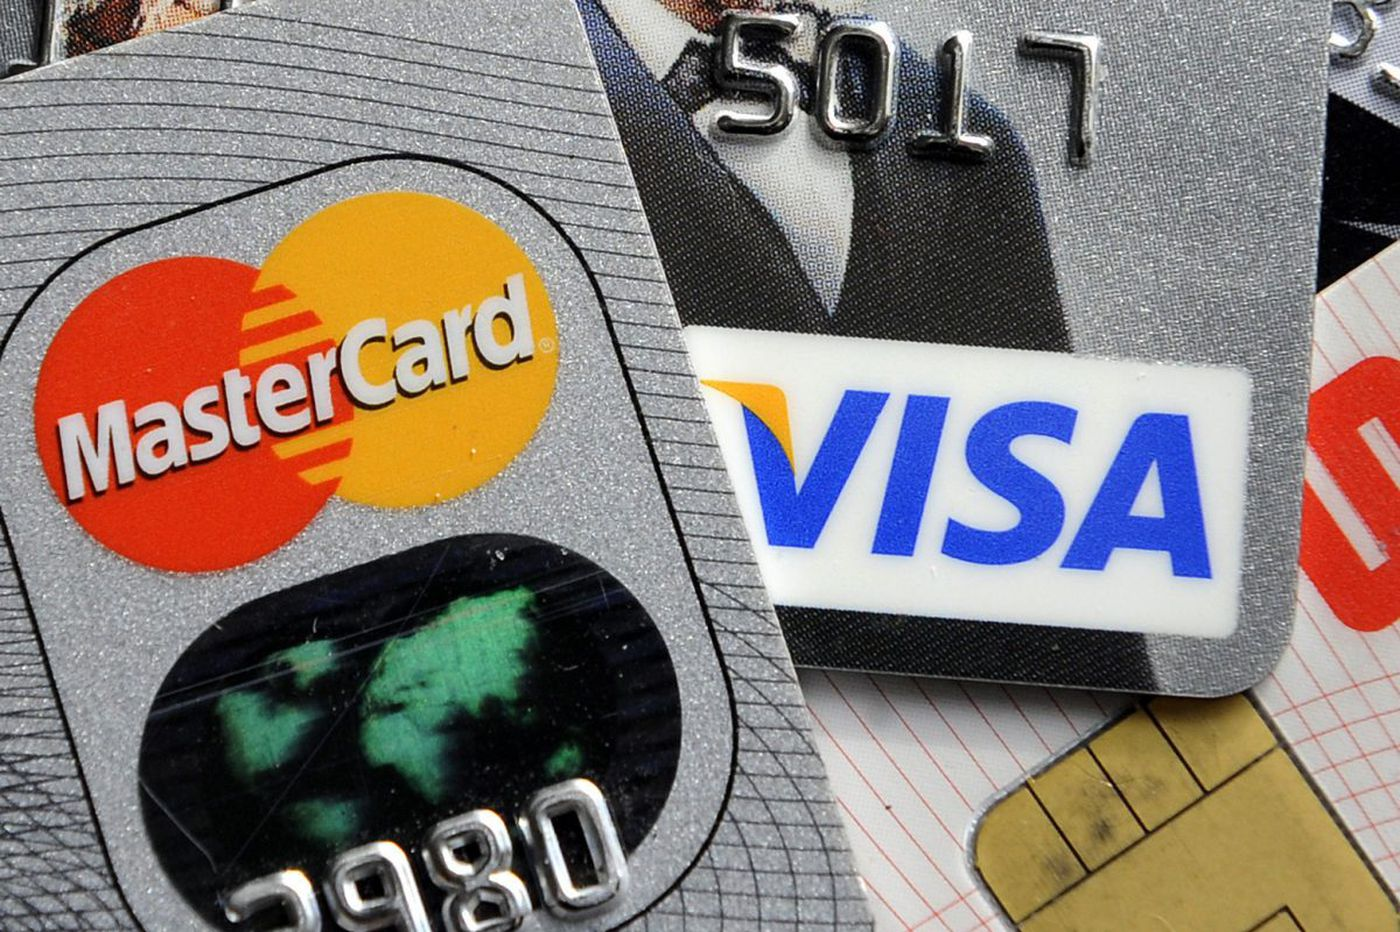 Are rising debt loads and declining protections too much for consumers? | Editorial